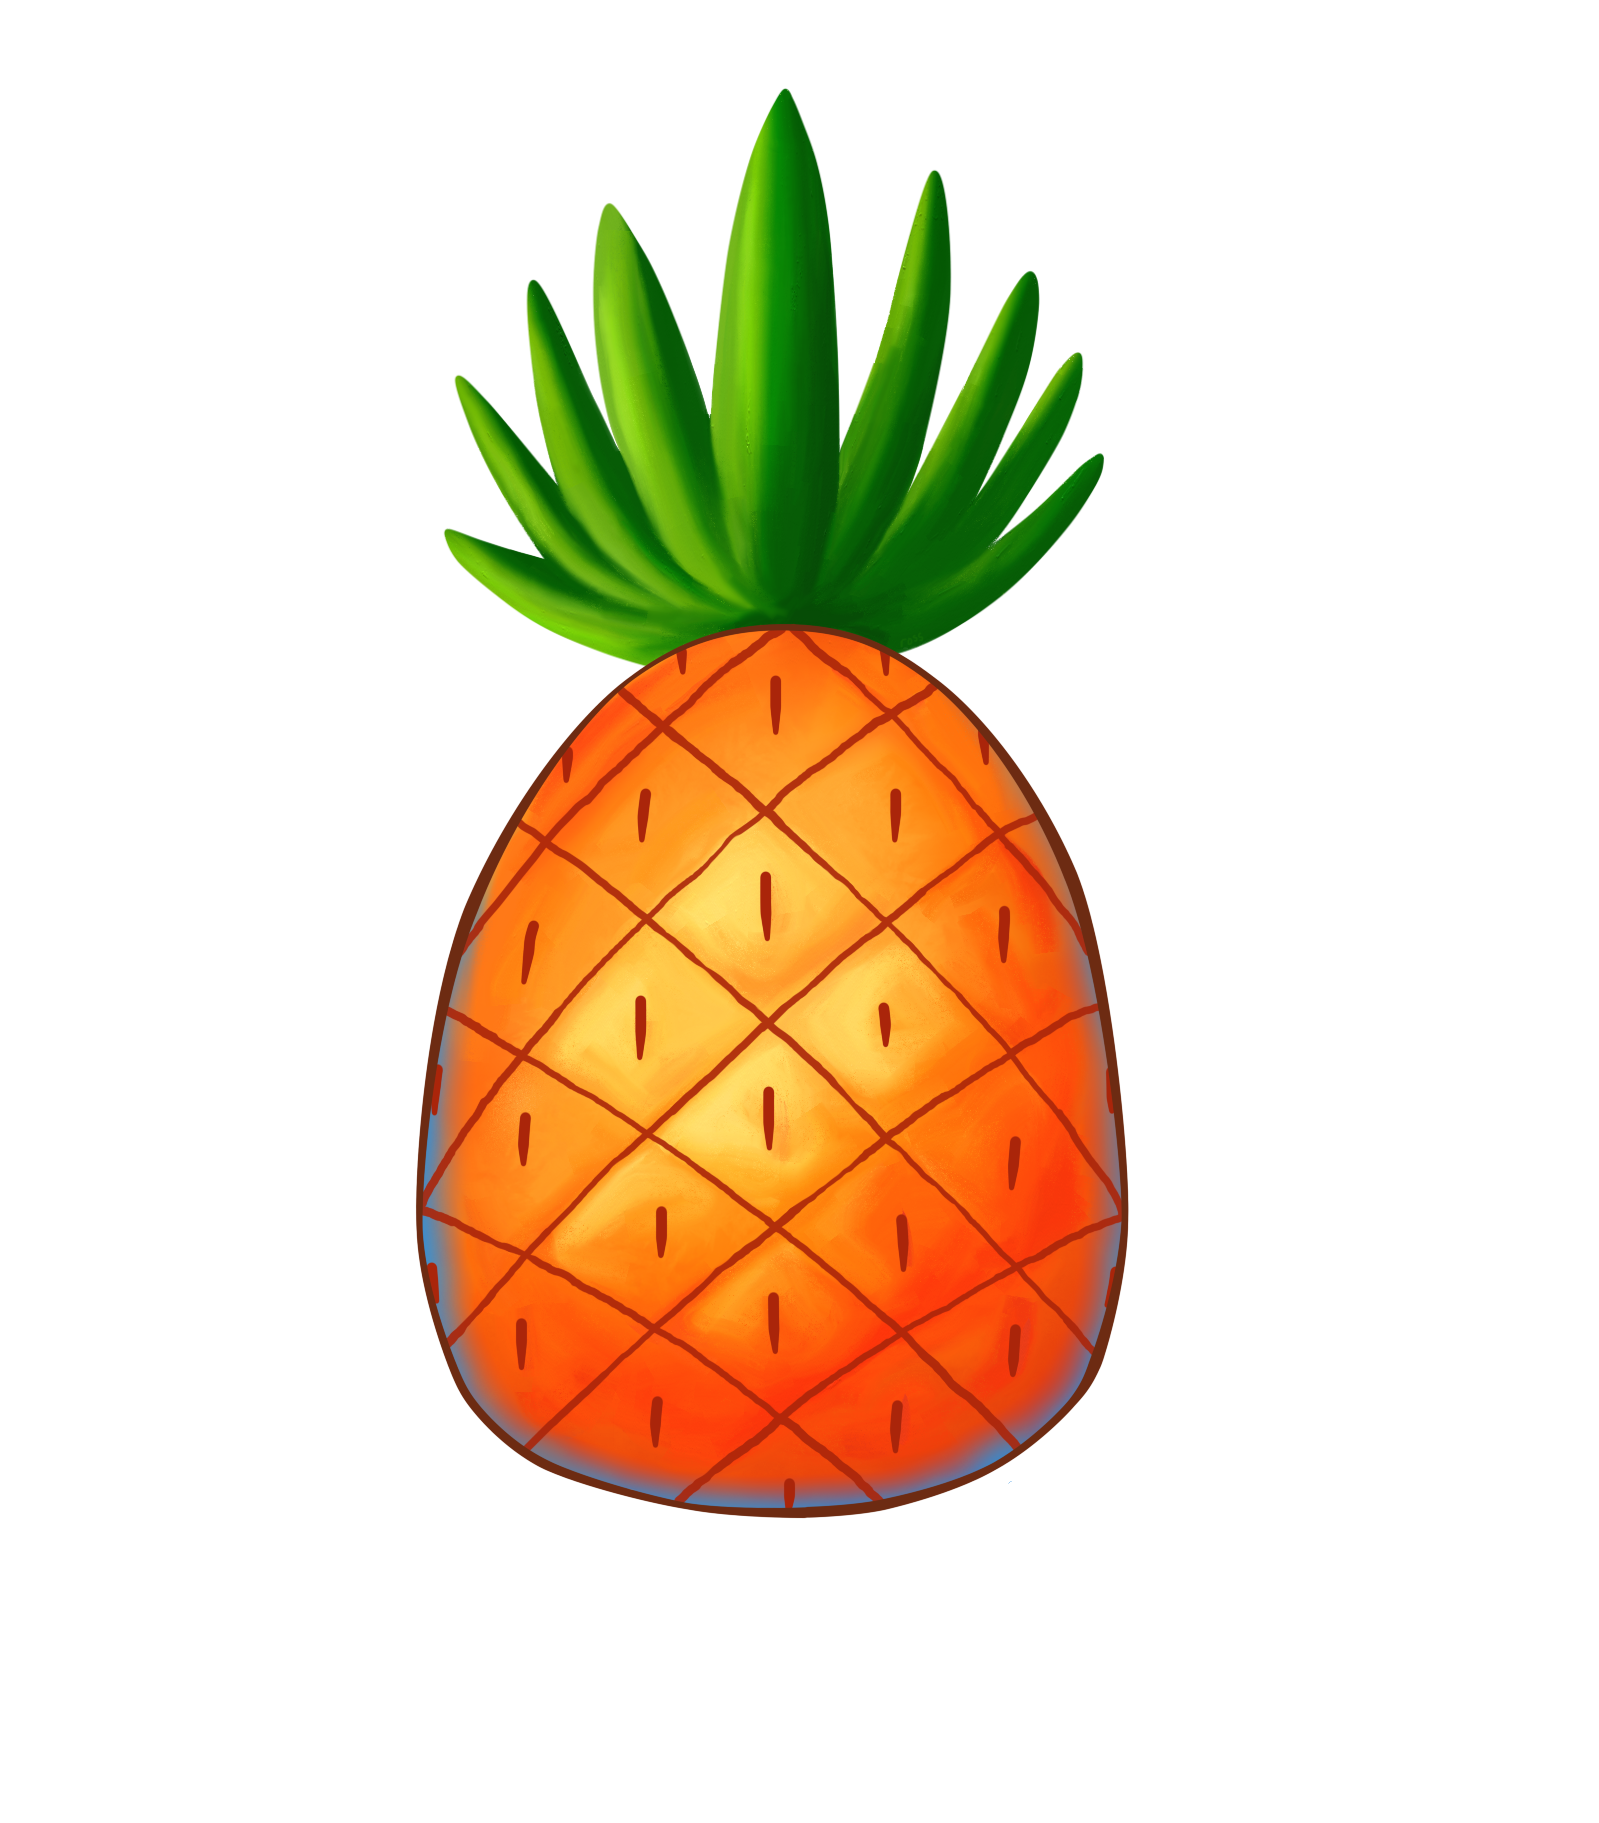 Spongebob pineapple png. Tumblr collage stickers ourimgs